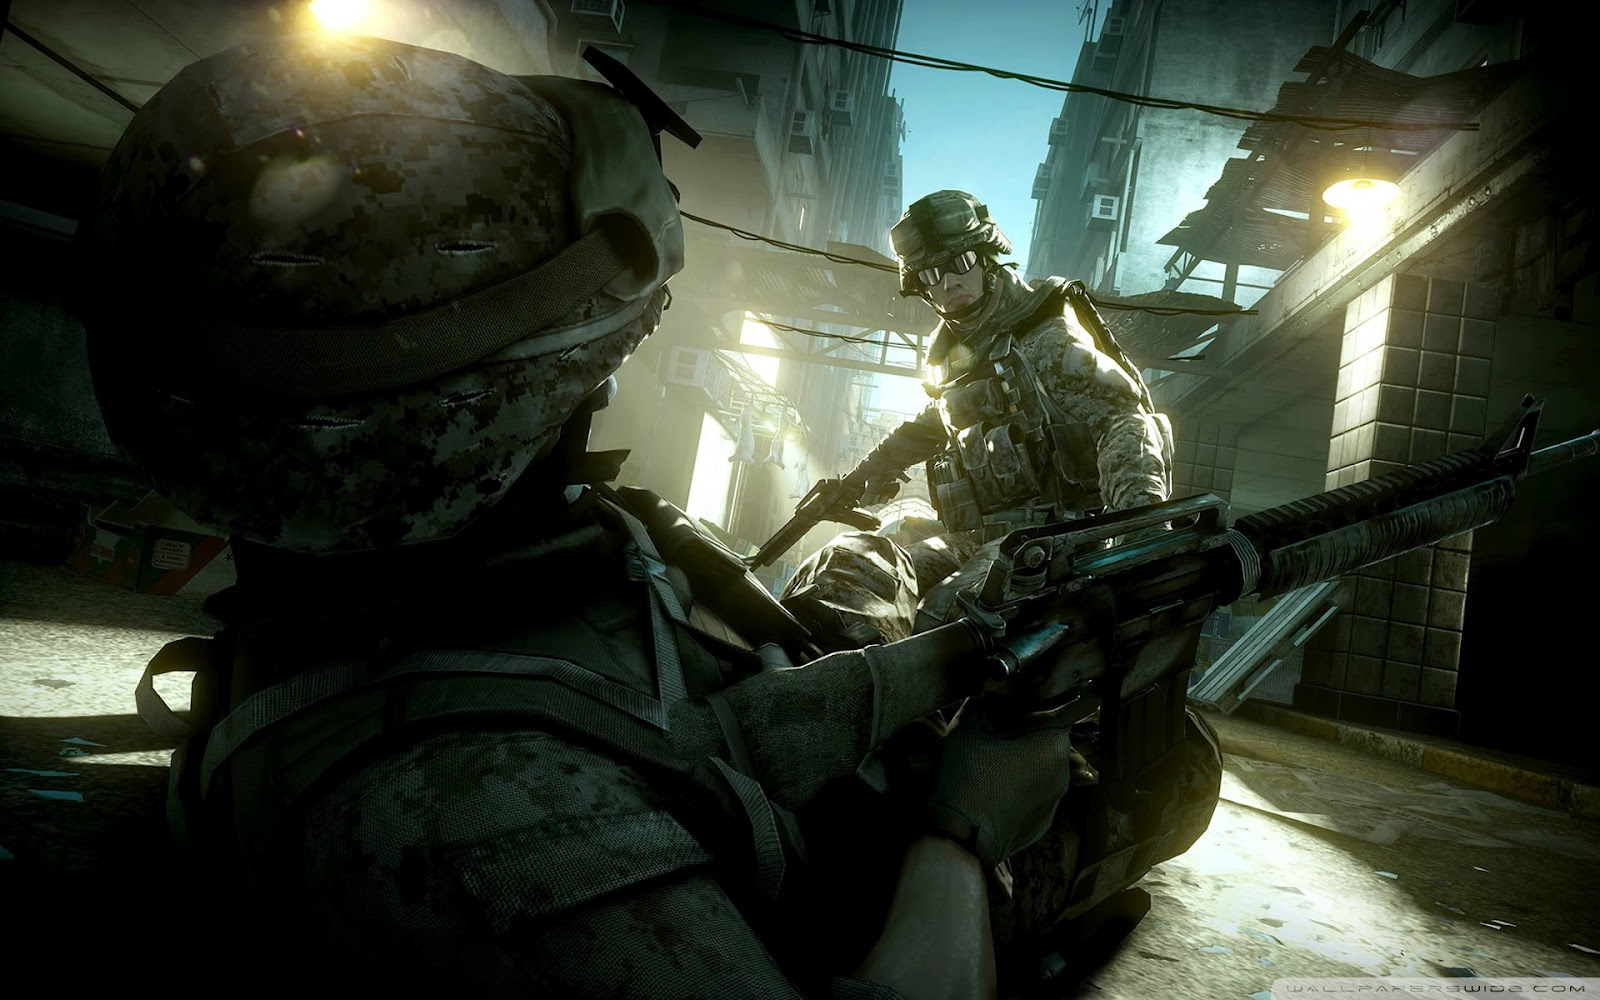 http://4.bp.blogspot.com/-tlPq-w8Us1A/T9JNsfZ2l9I/AAAAAAAACz0/812hX4654k8/s1600/battlefield_3_video_game_2-wallpaper-1920x1200.jpg